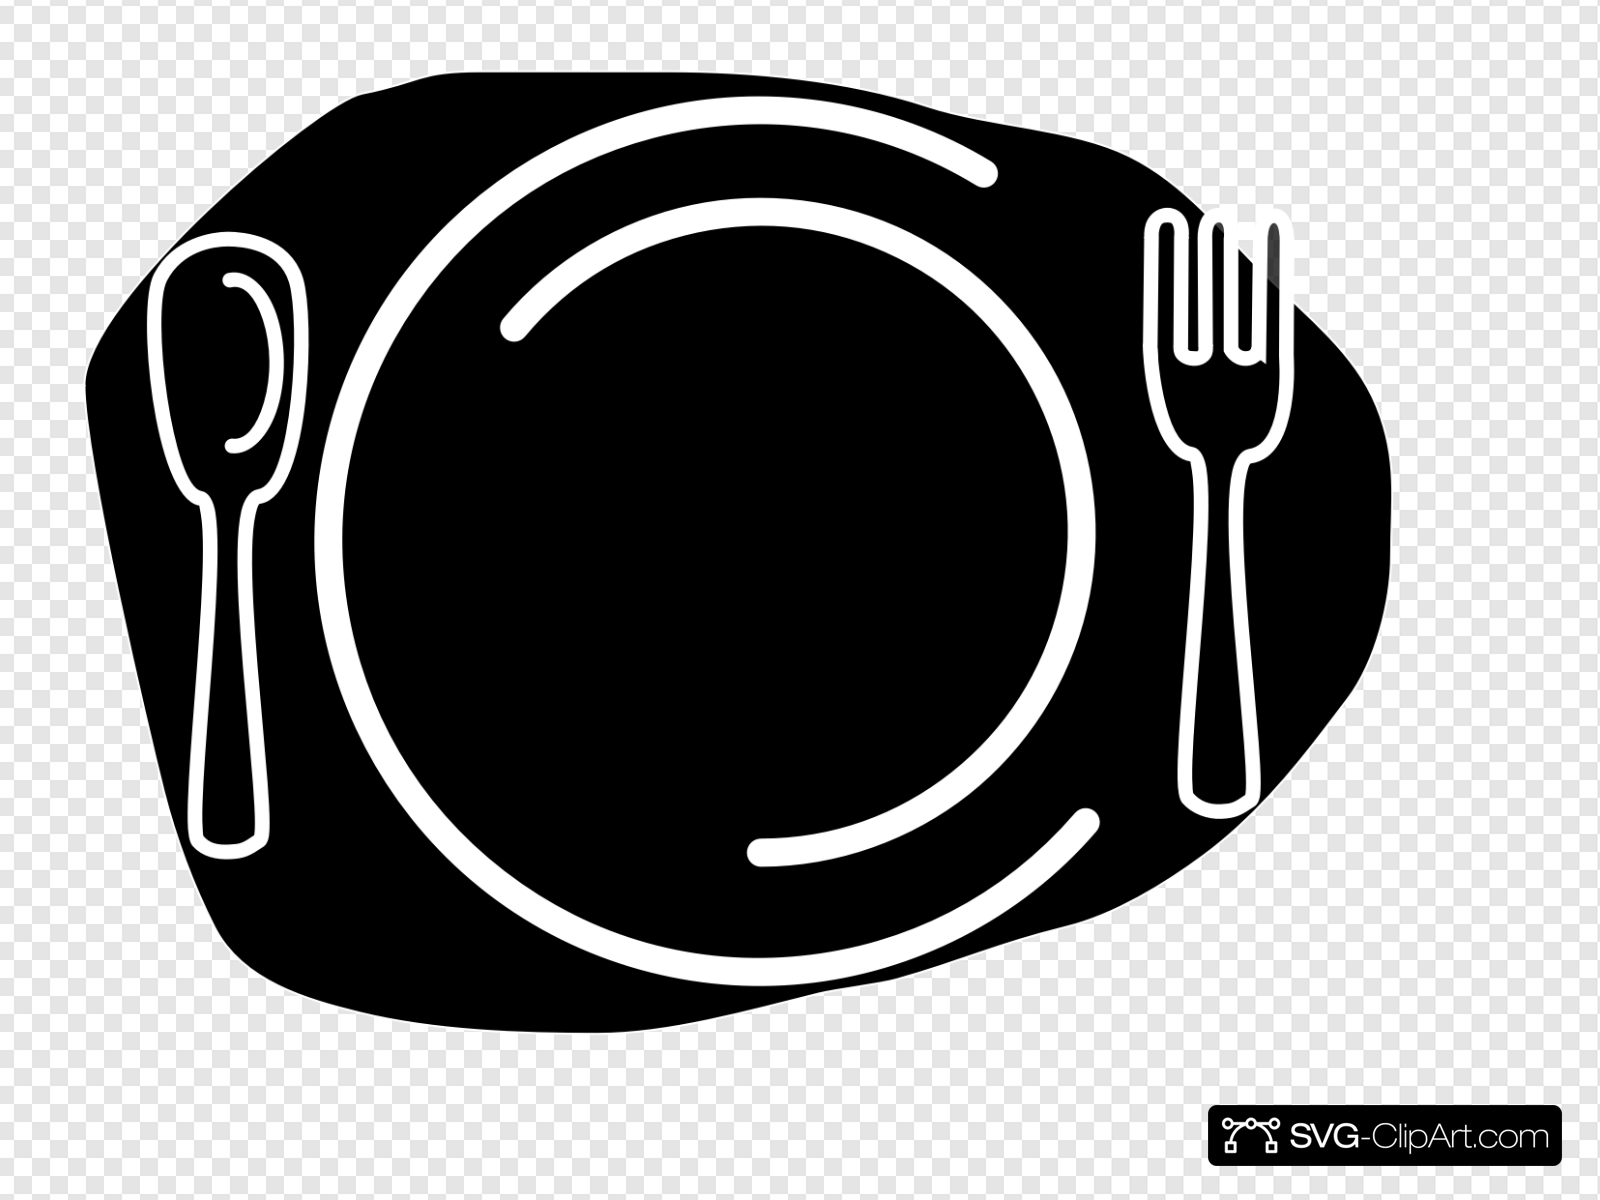 Knife And Fork Clipart Blck Clip art, Icon and SVG.